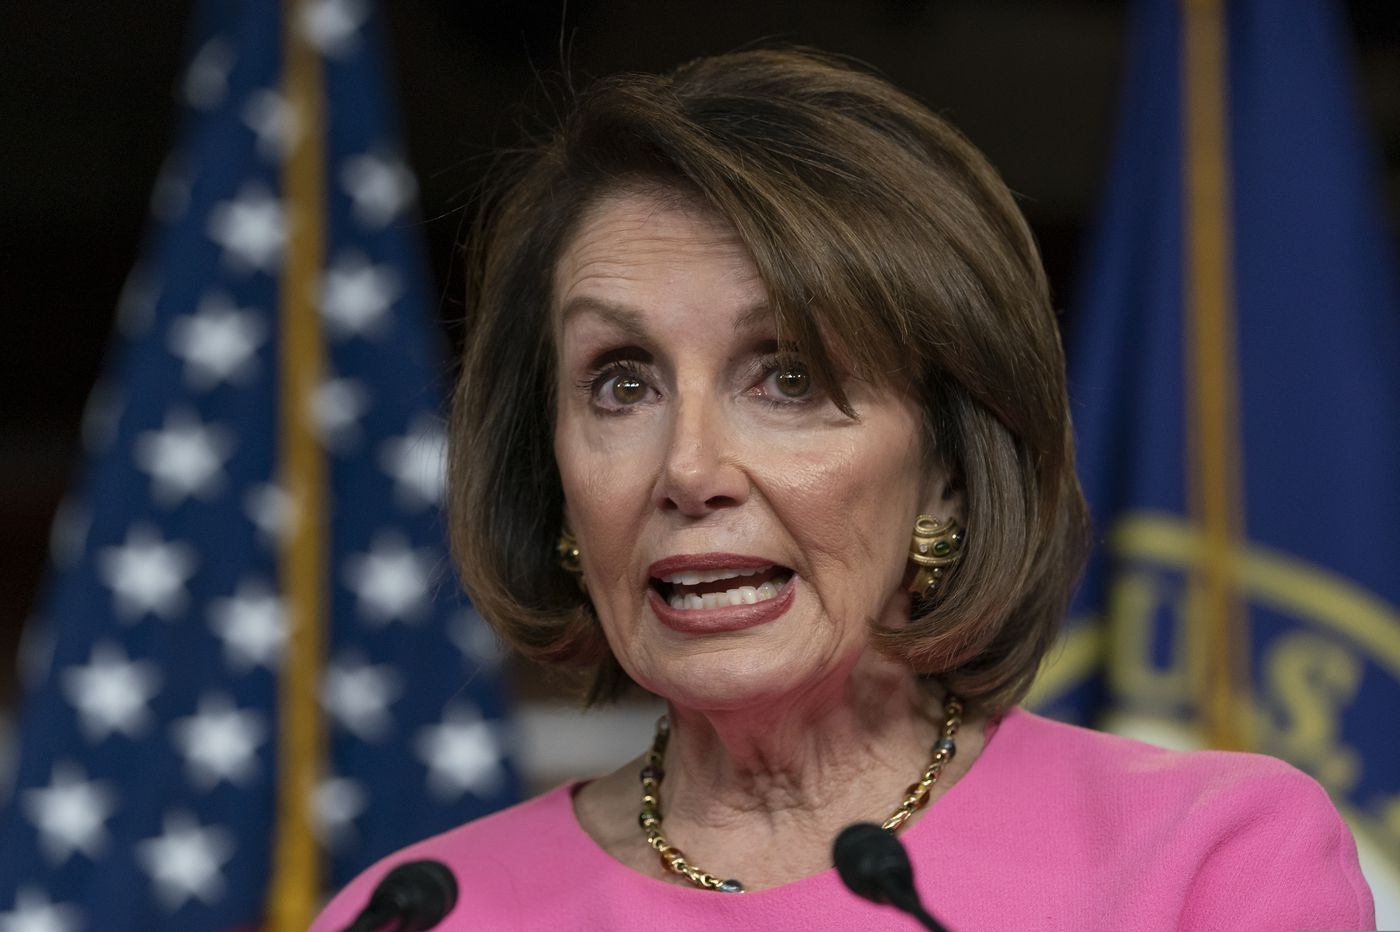 Altered video makes Pelosi seem to slur words